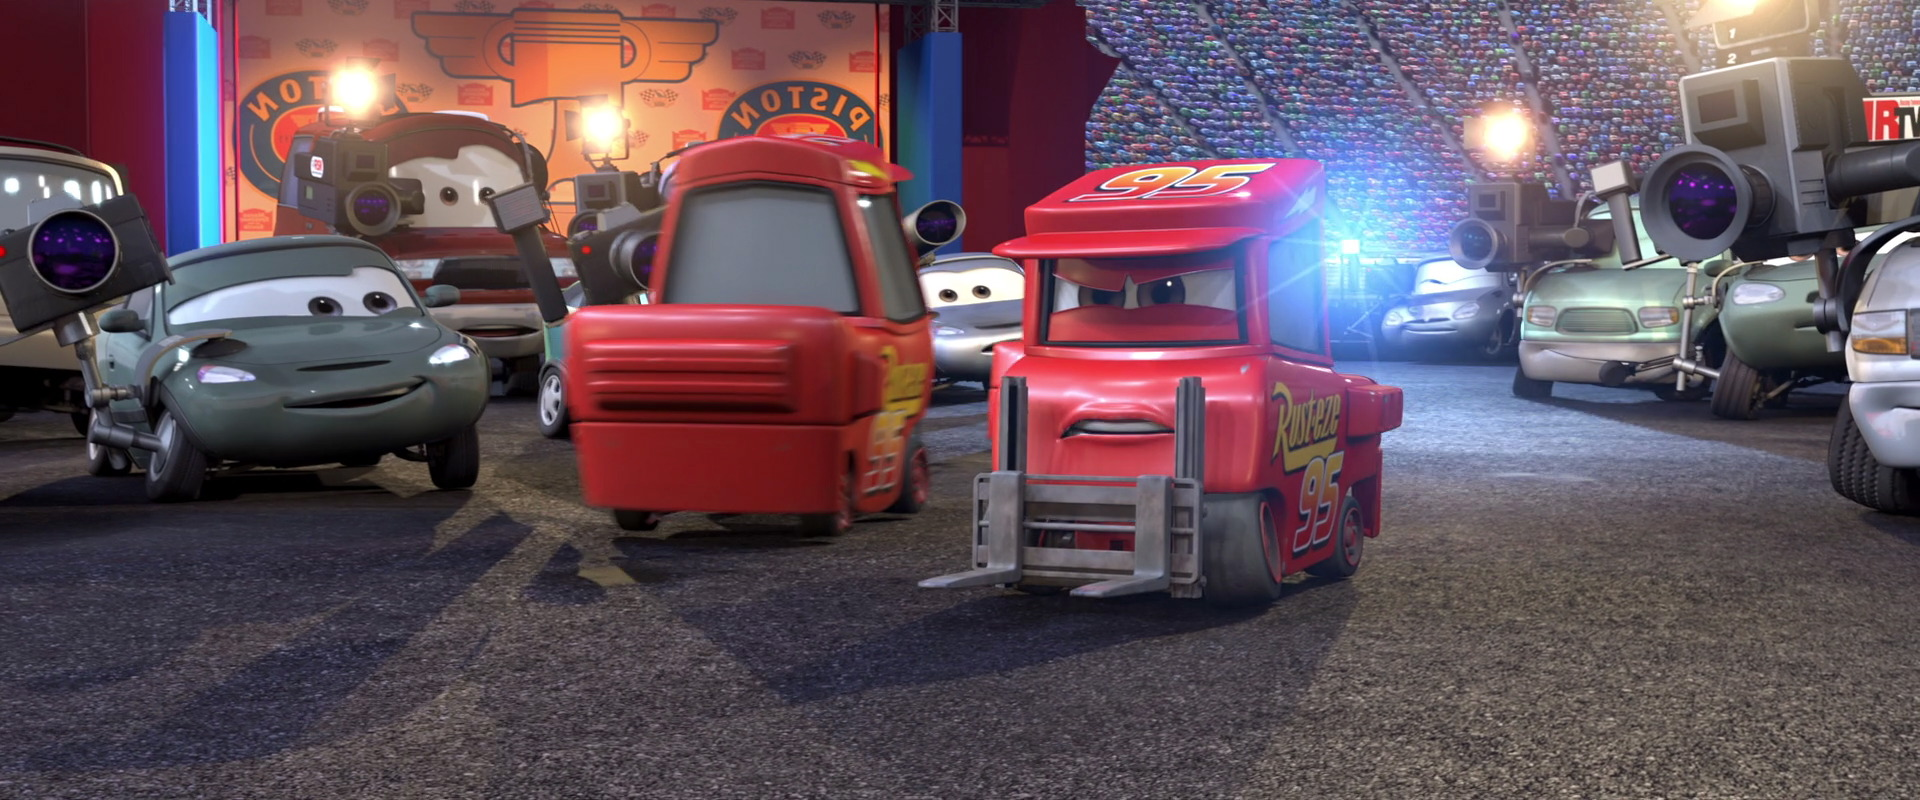 michel not chuck personnage character pixar disney cars